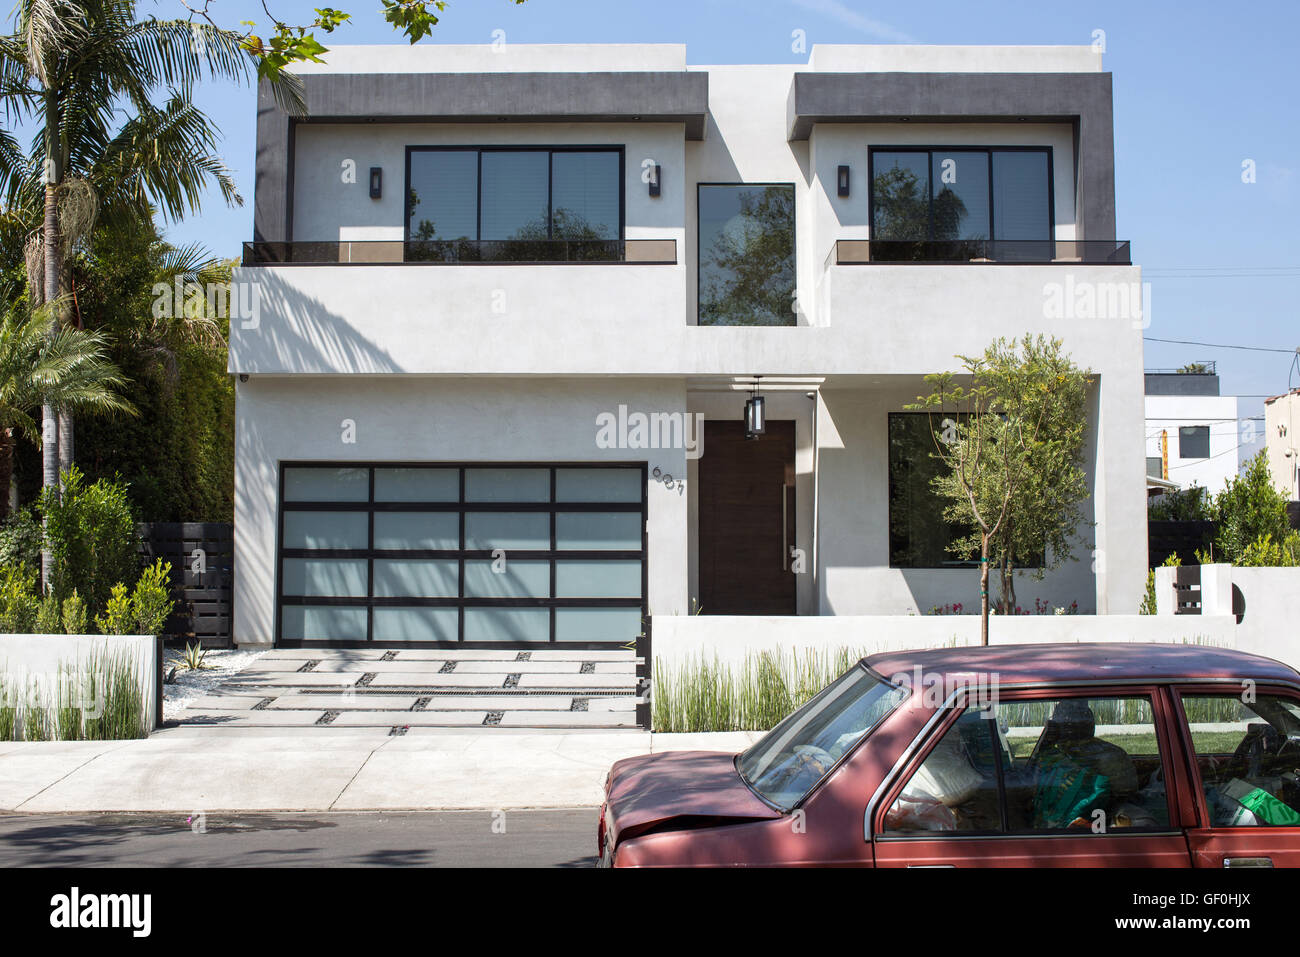 Pictures of the new designer box homes in Los Angeles which are replacing  traditional Spanish style homes